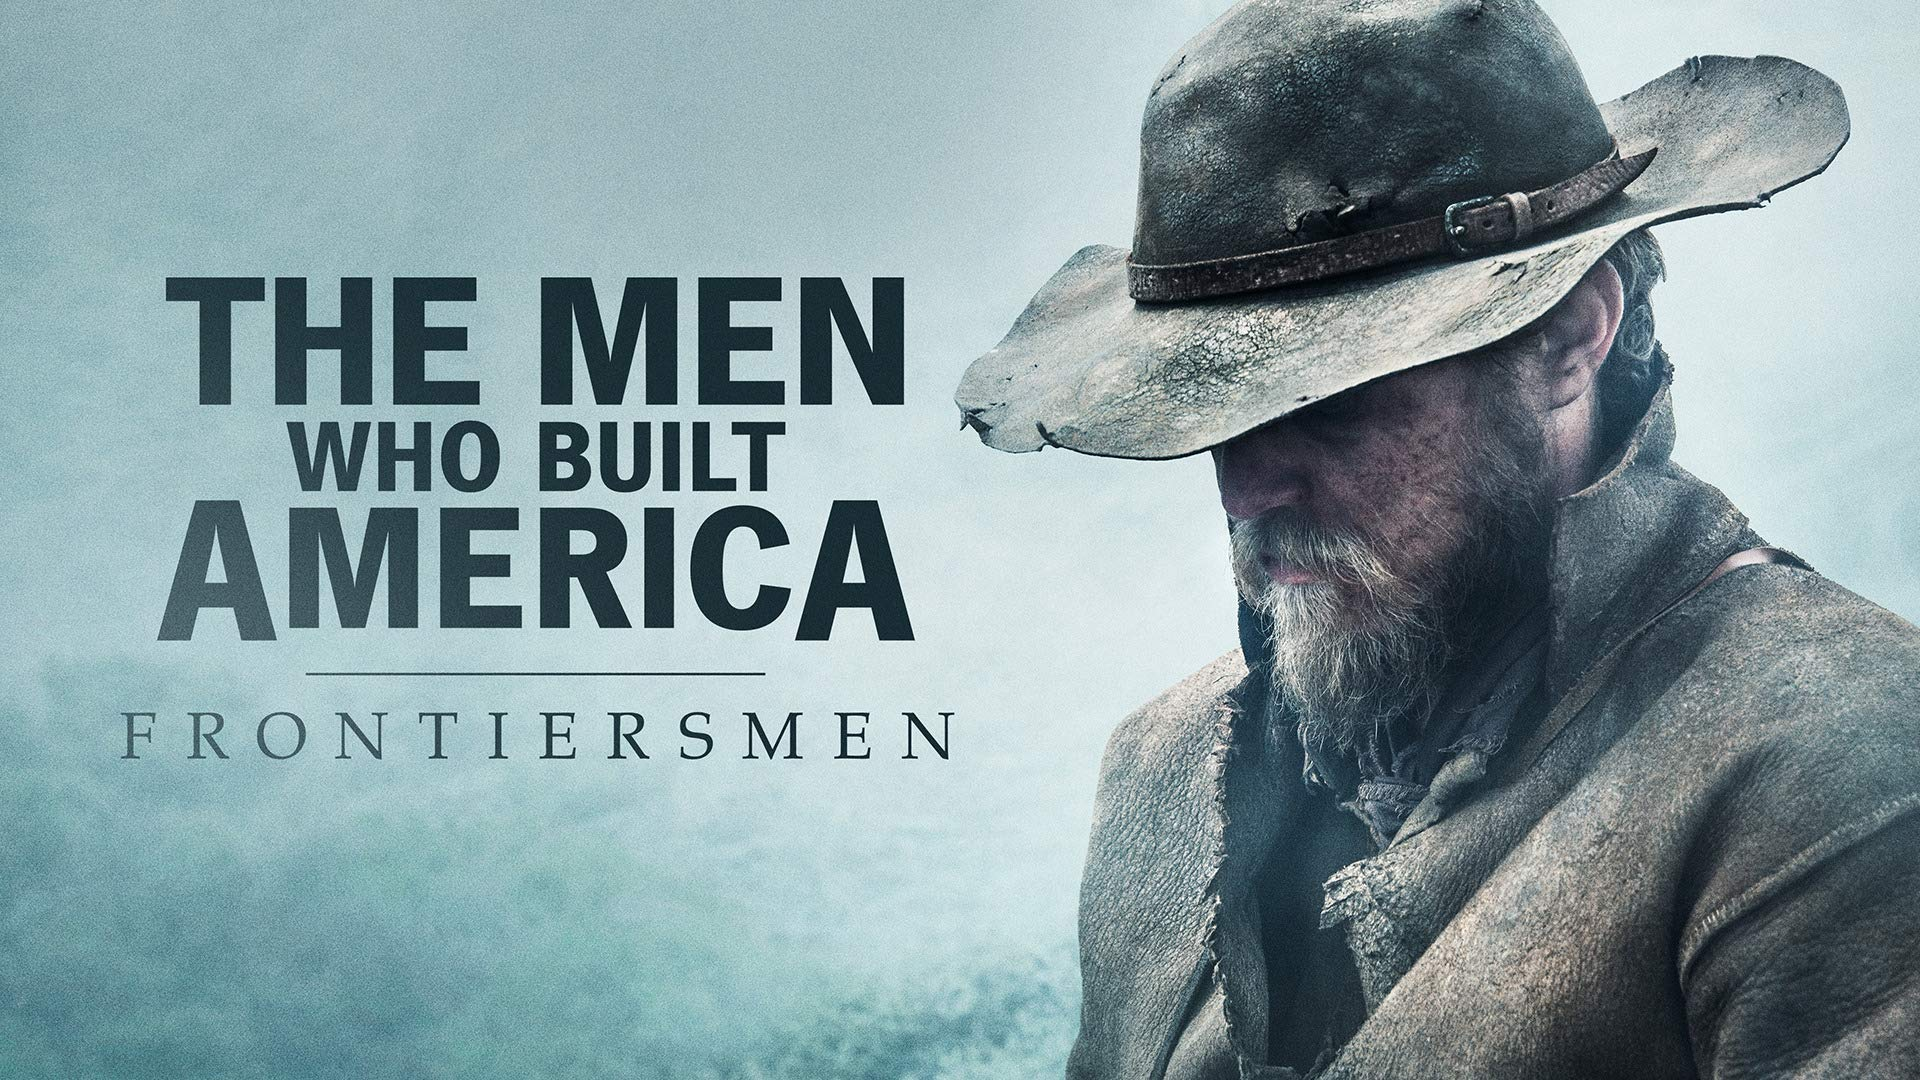 The Men Who Built America episode 3 – Live Free or Die